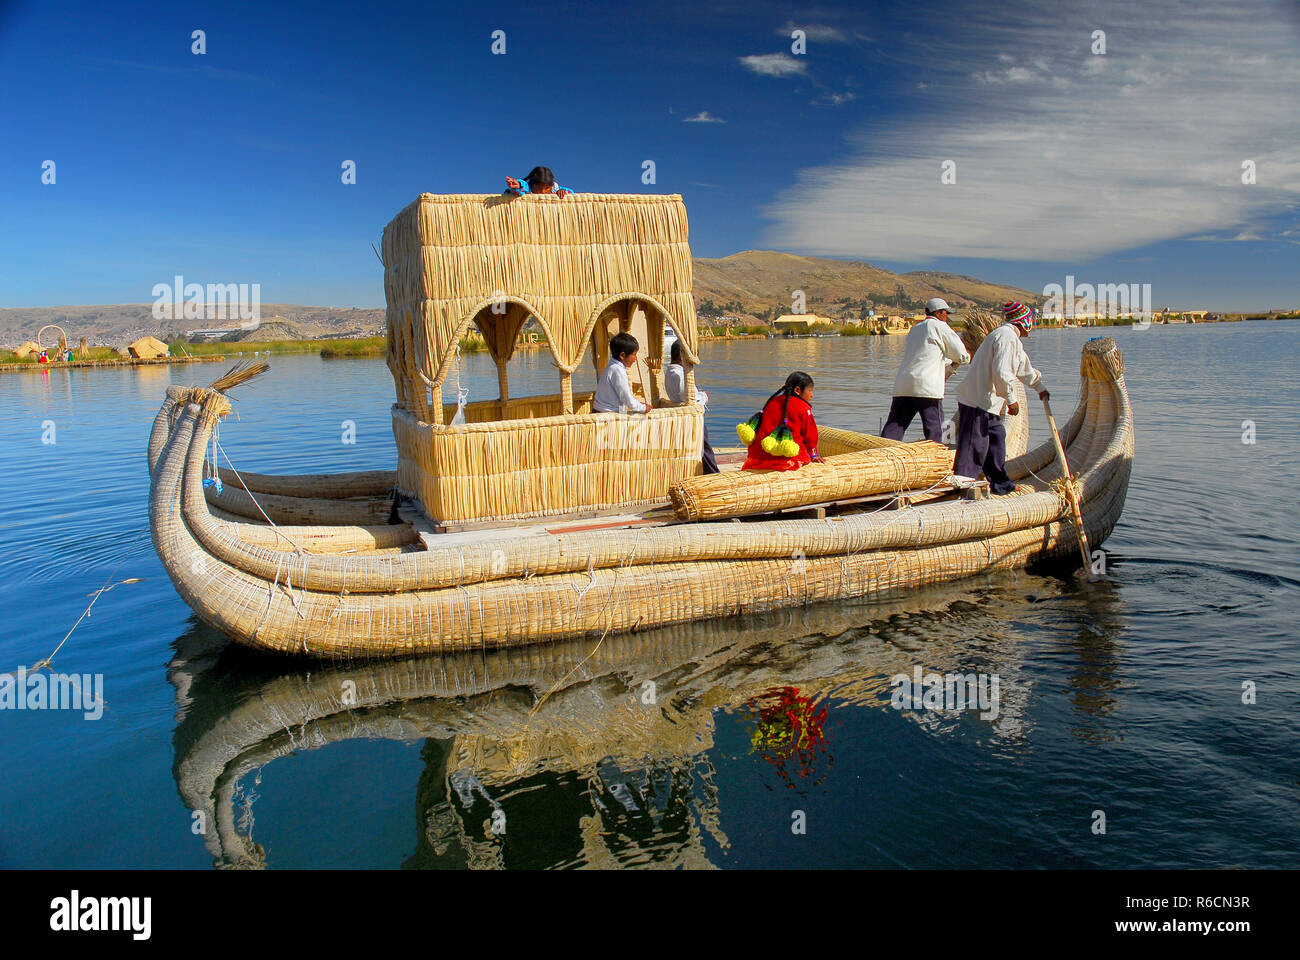 Traditional Uros Boat In Lake Titicaca Peru Floating Island - Stock Image